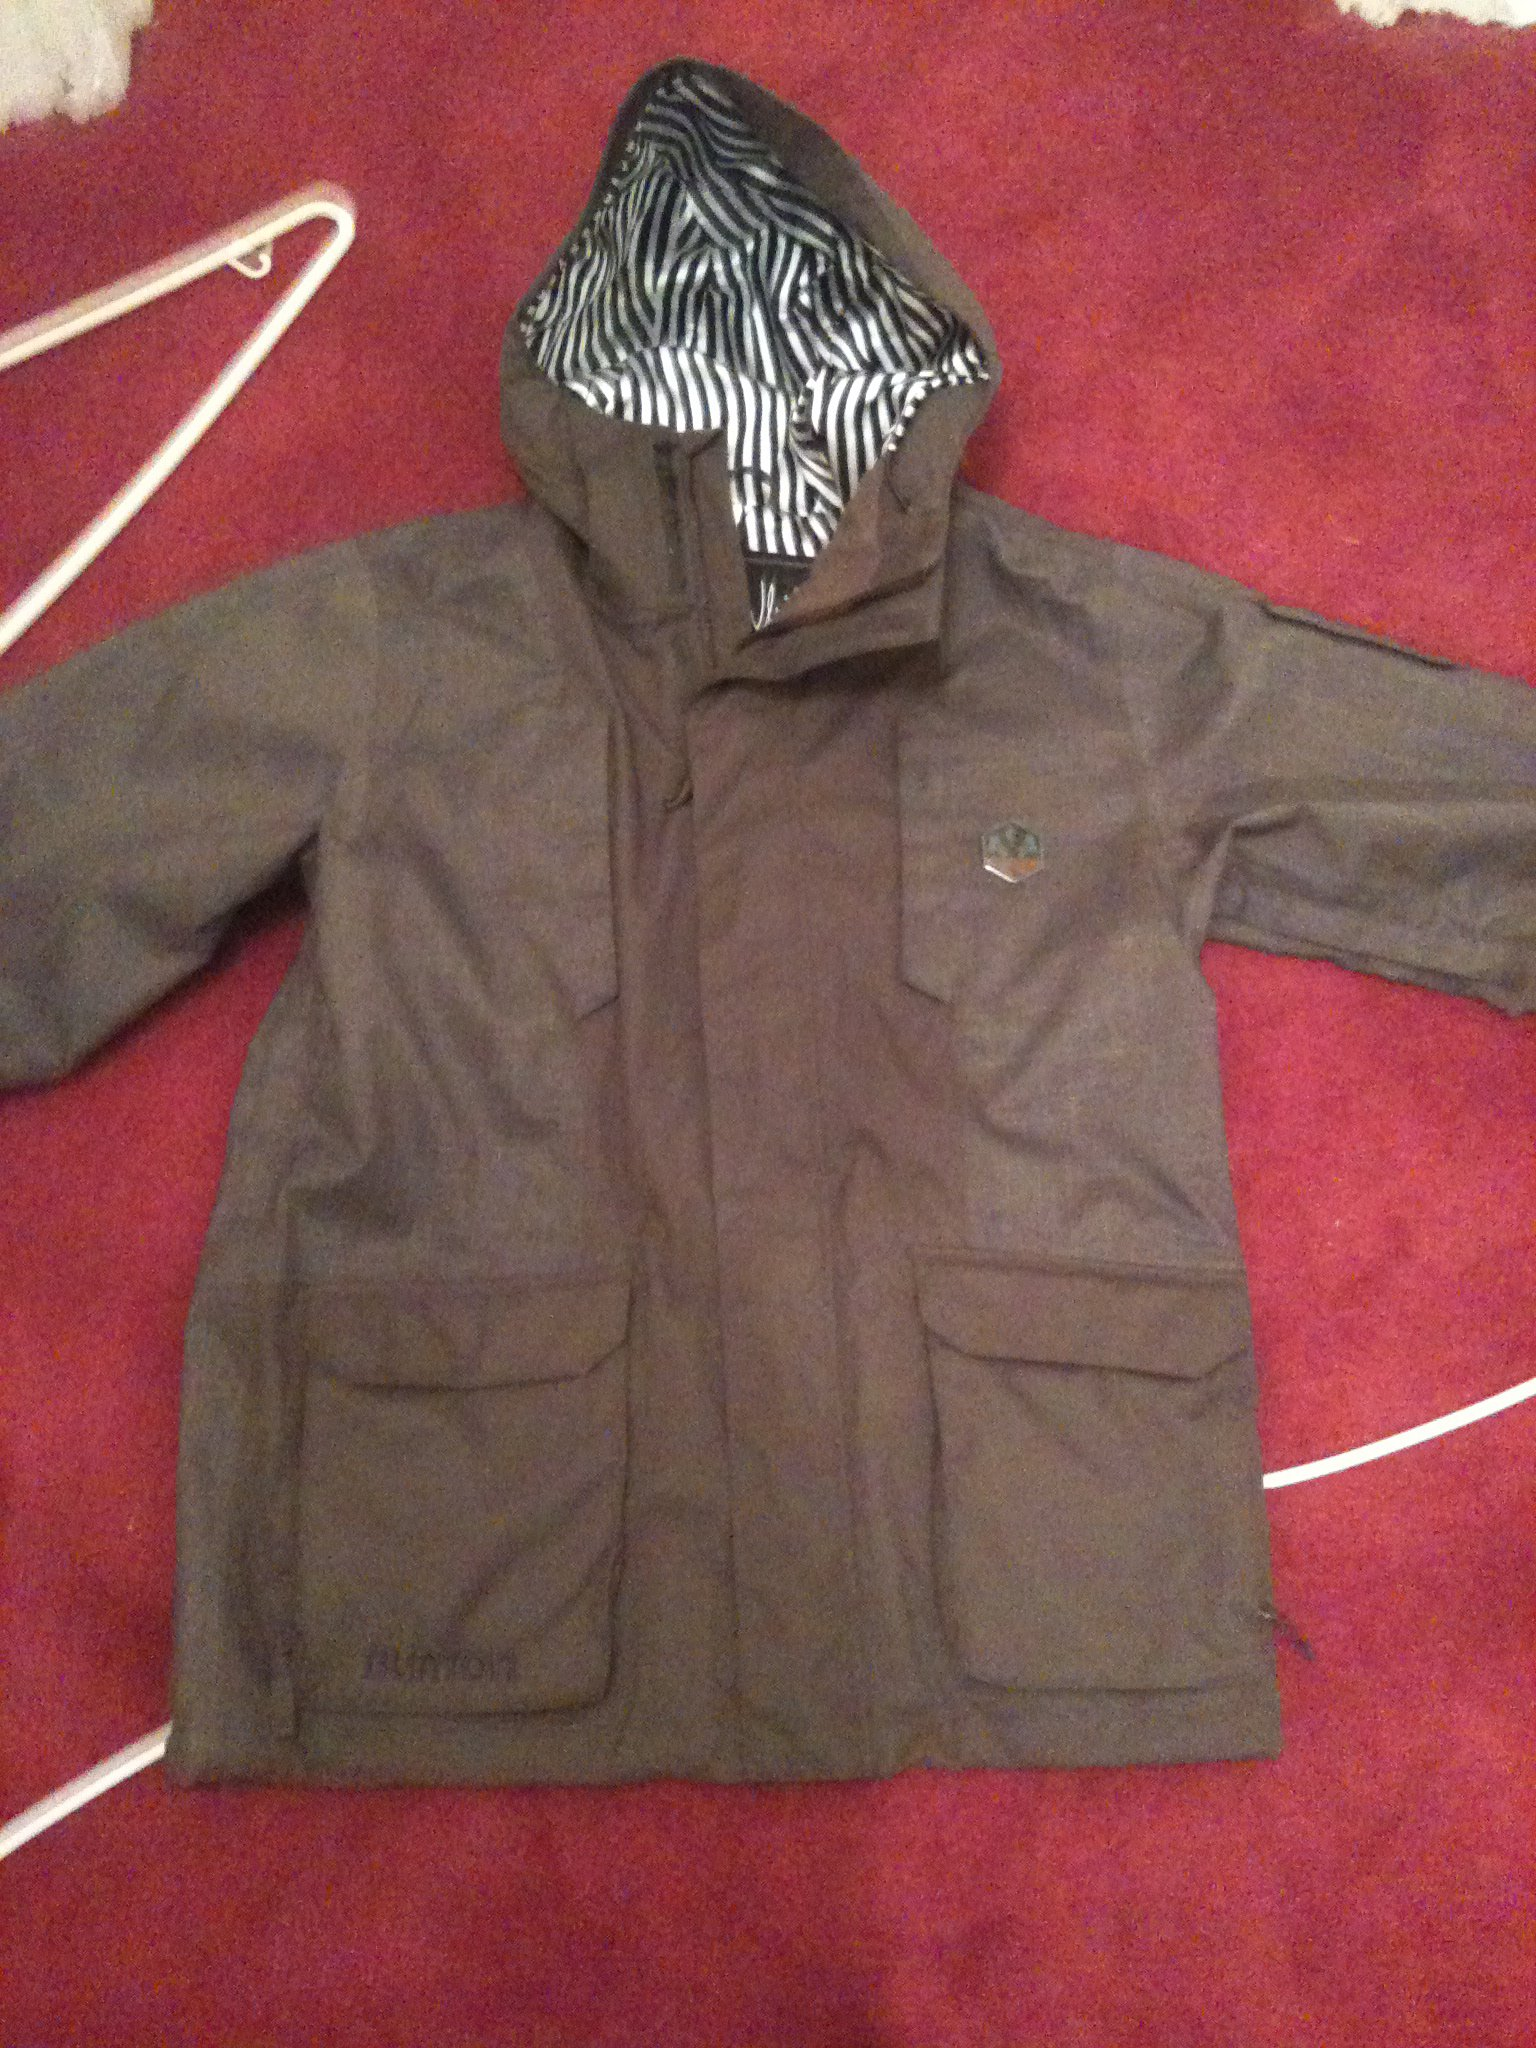 Small burton jacket for sale